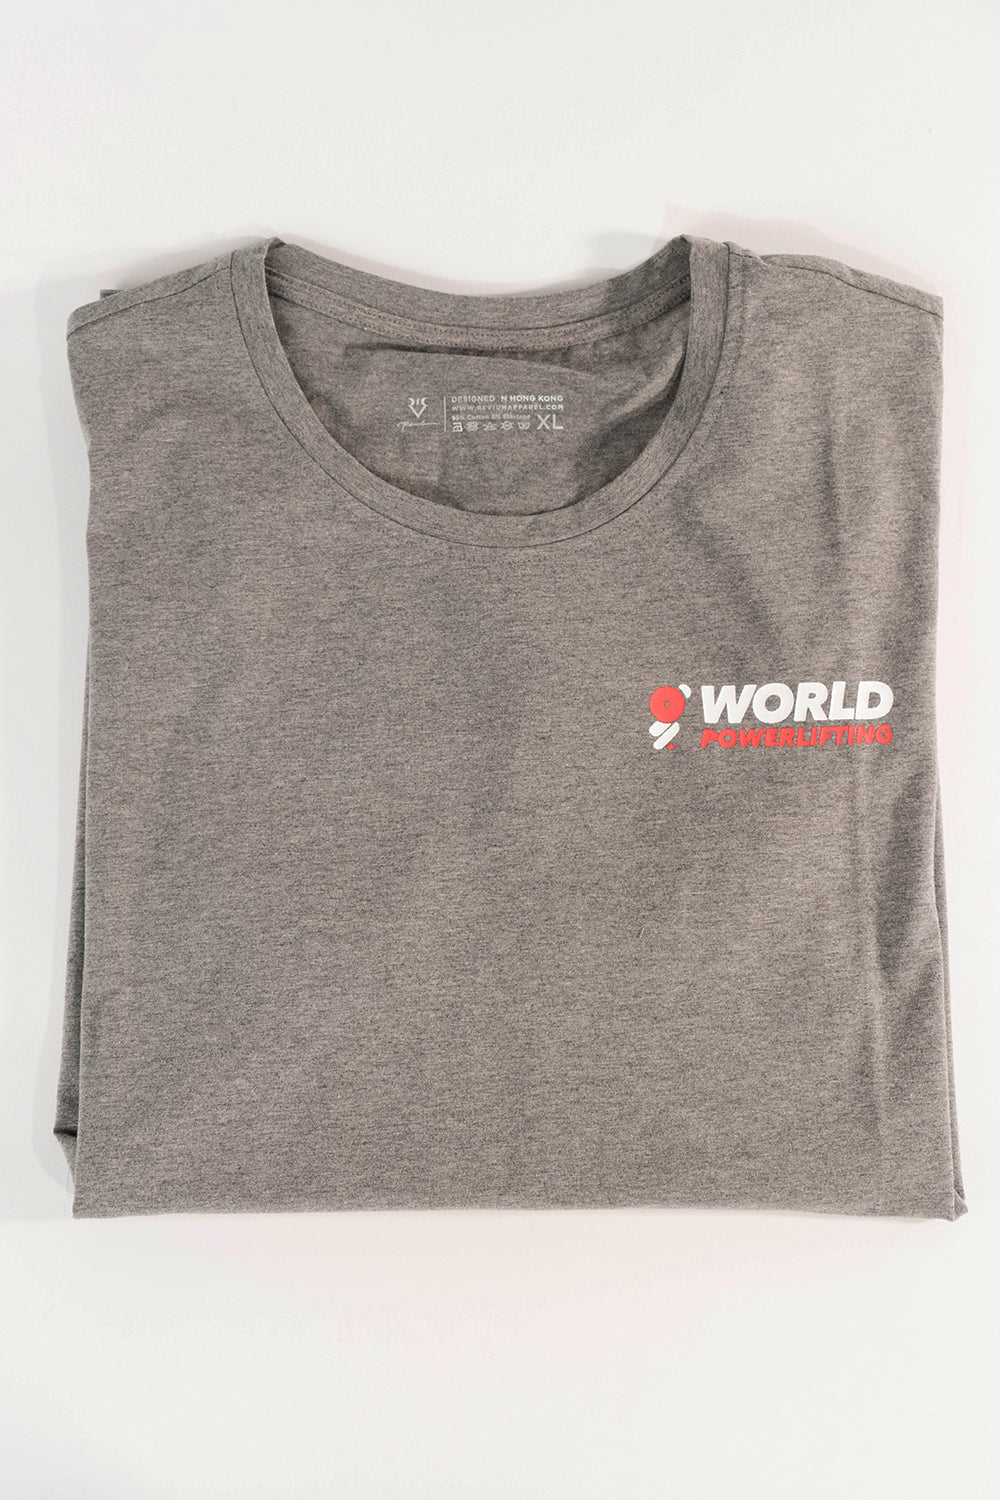 2019 HKPF Asia Pacific Men's T-shirt